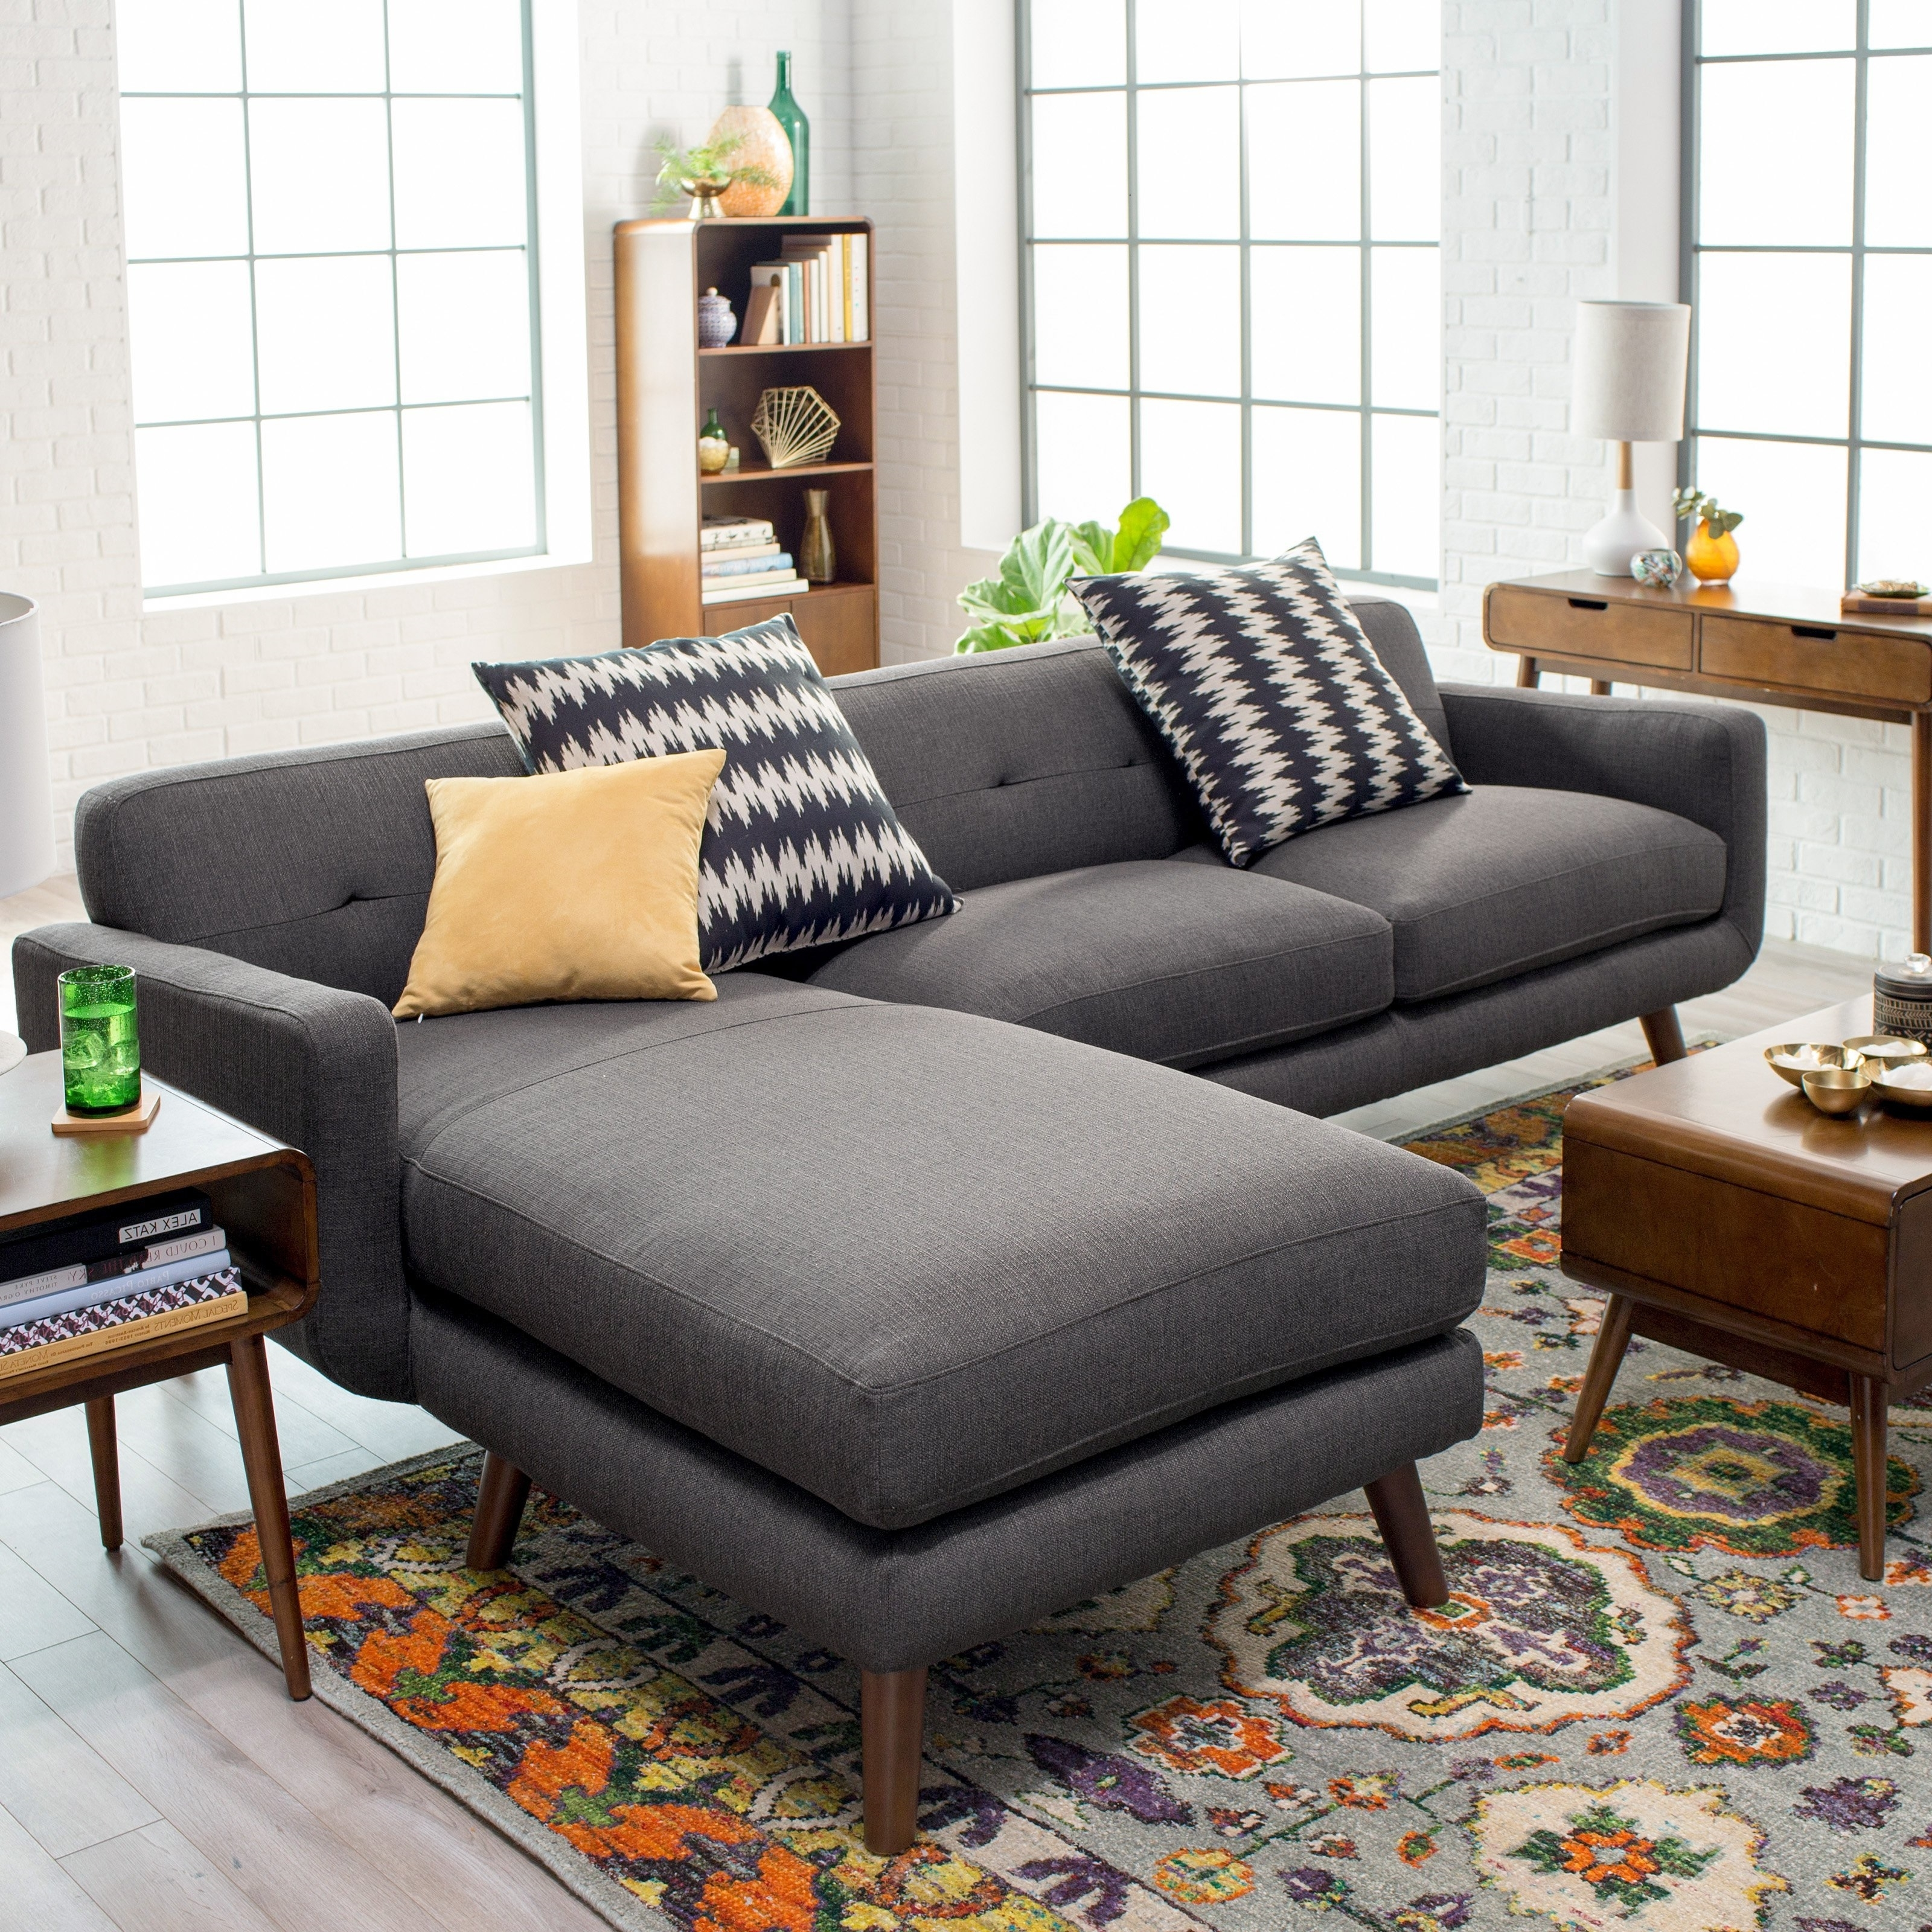 2018 Living Room Furniture : Small Sectional Sofa Sectional Sofas Inside Good Quality Sectional Sofas (View 1 of 20)